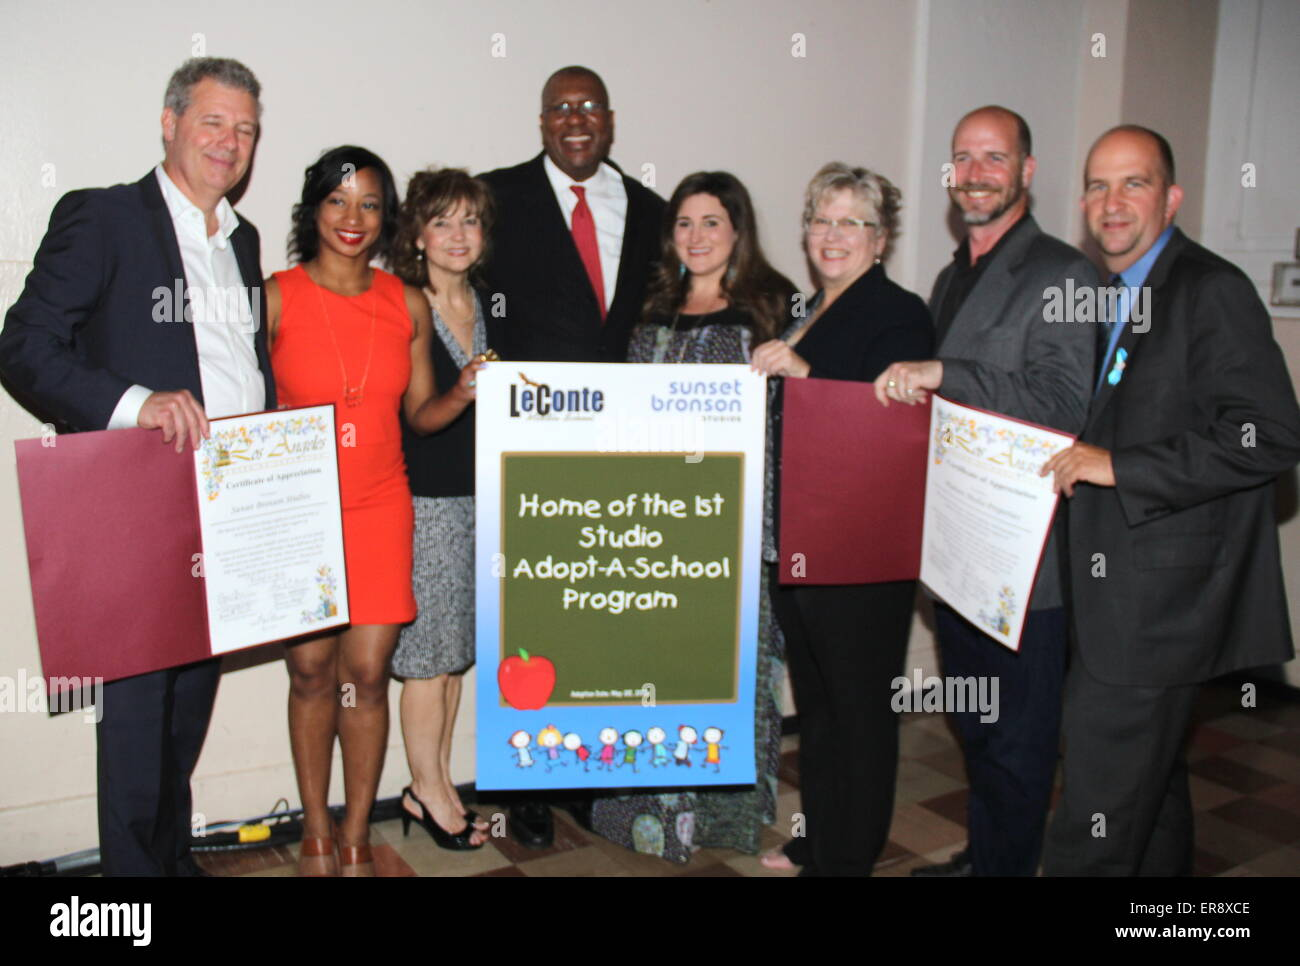 Hollywood, California, USA. 27th May, 2015. I15759CHW.Los Angeles Unified School District Announce Partnership With - Stock Image